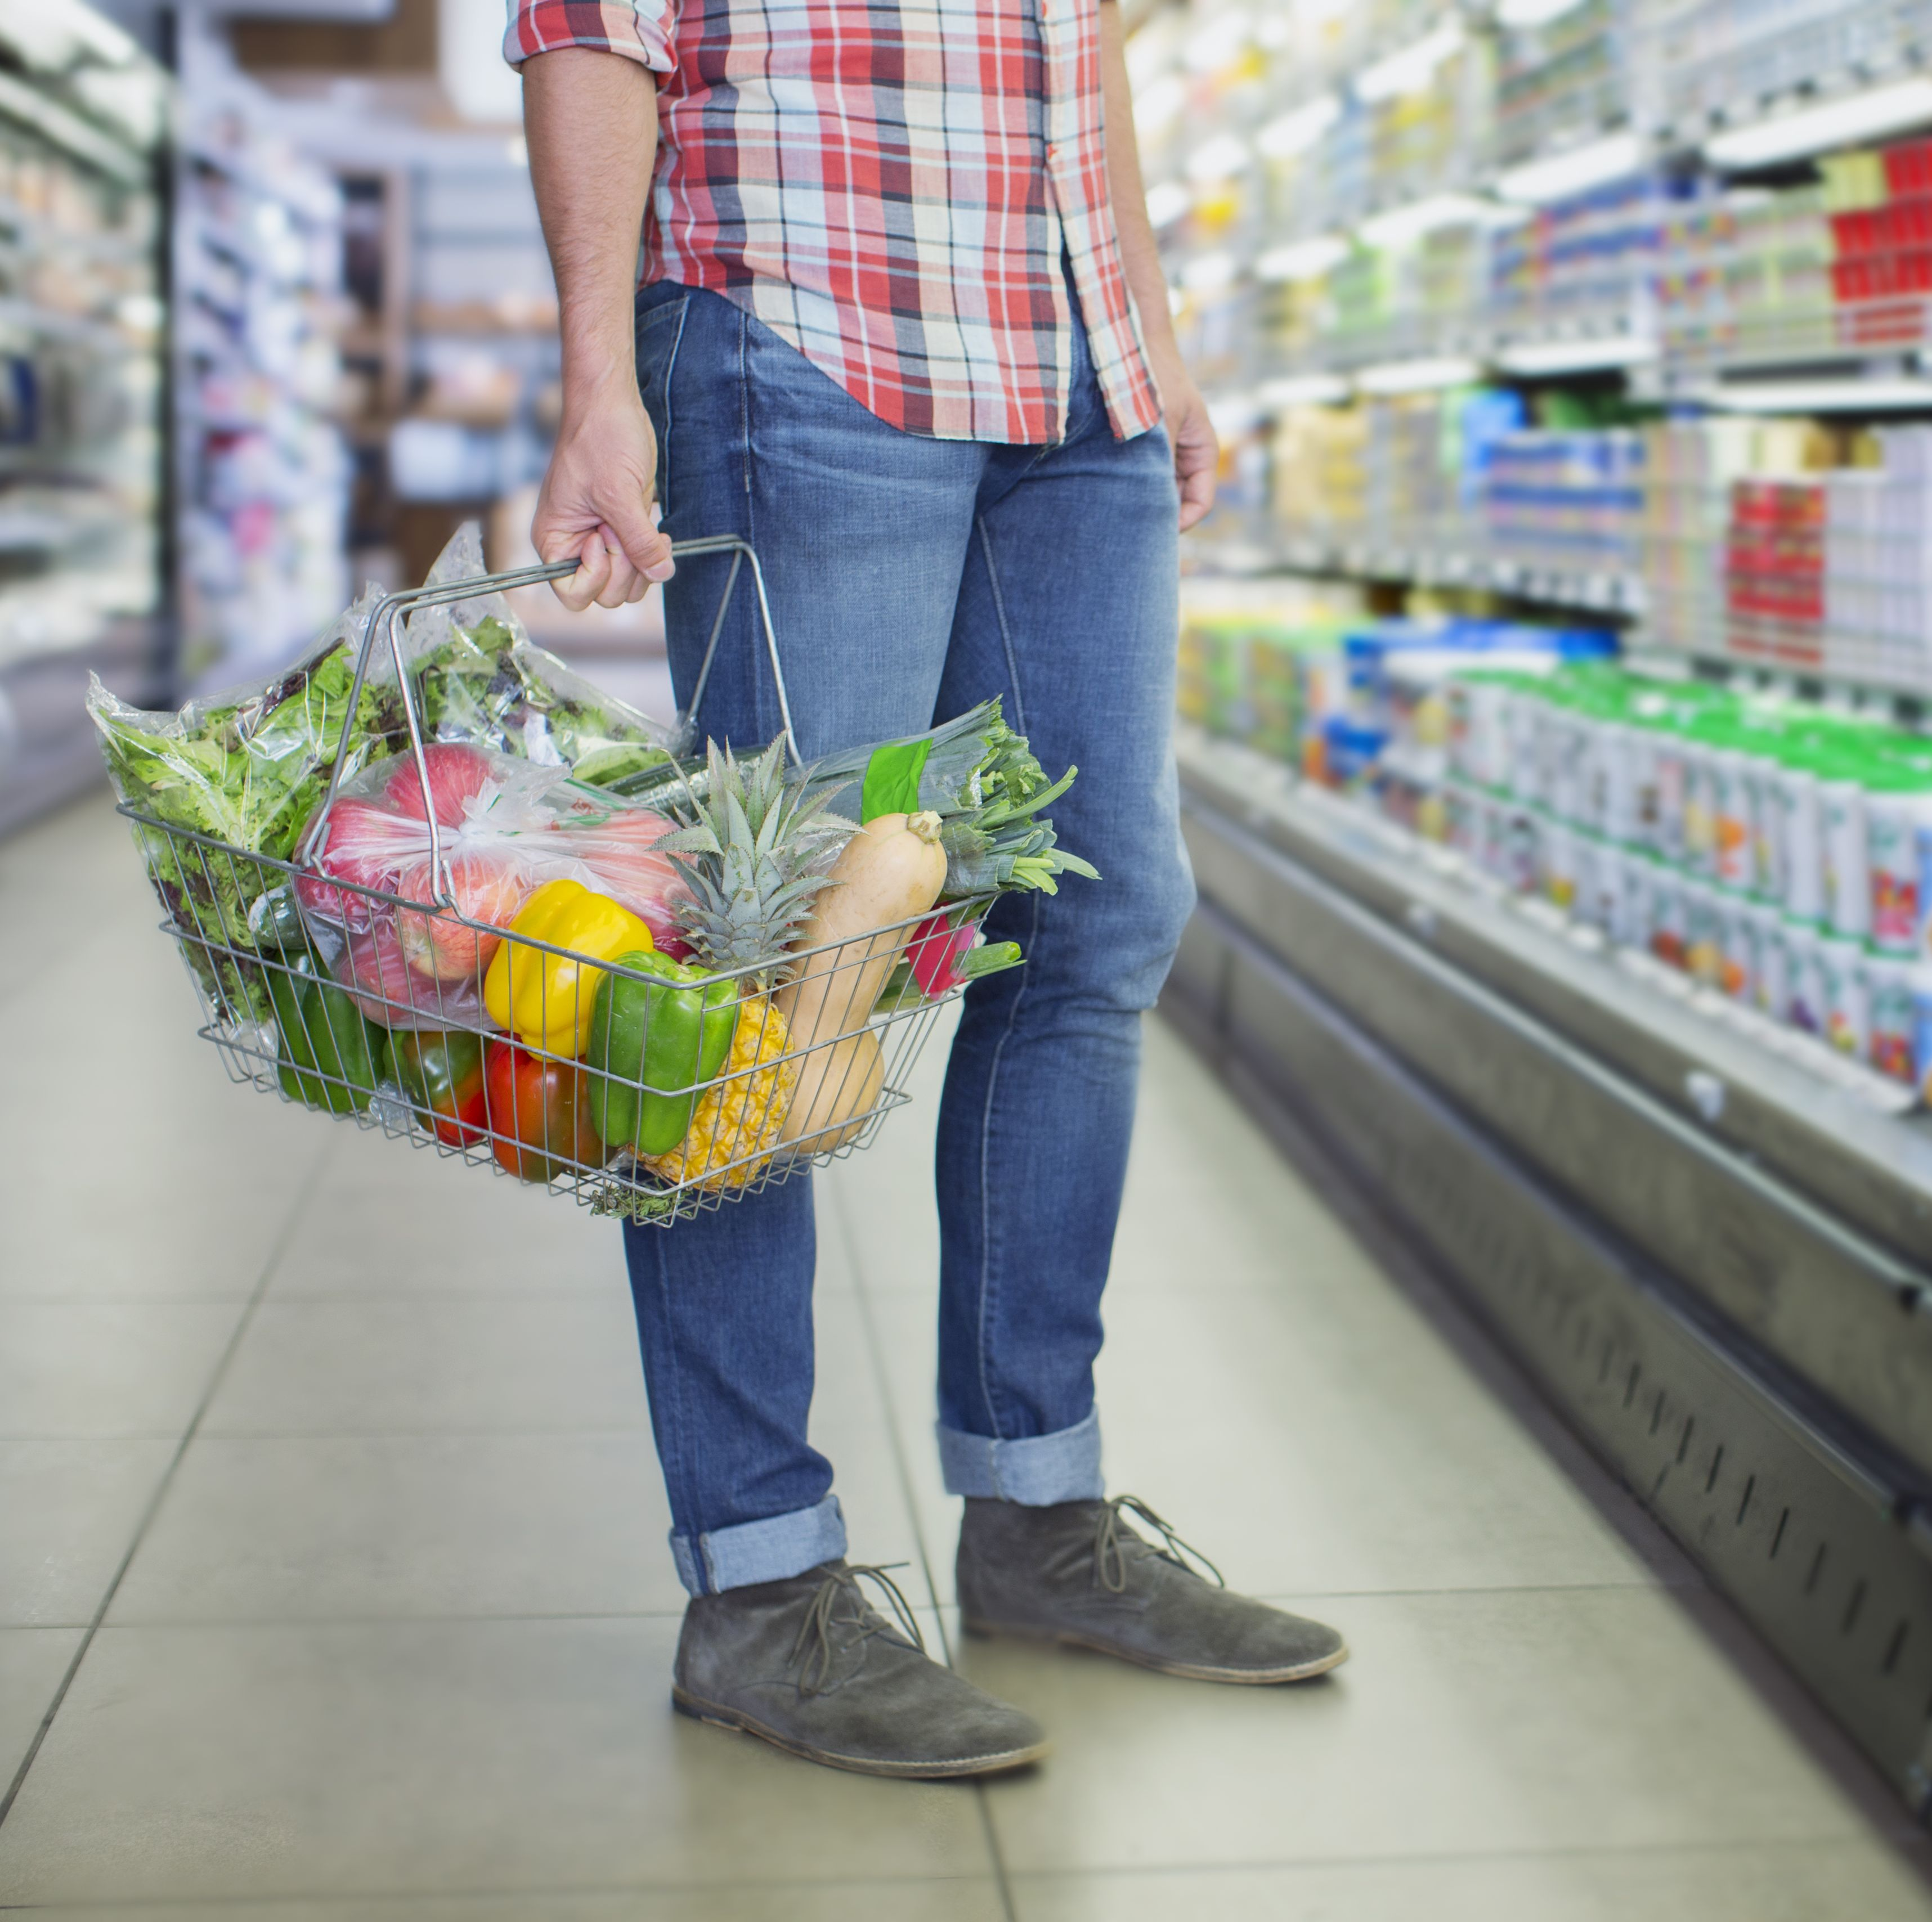 The Keto Diet Grocery List That Will Make Your Life So Much Easier